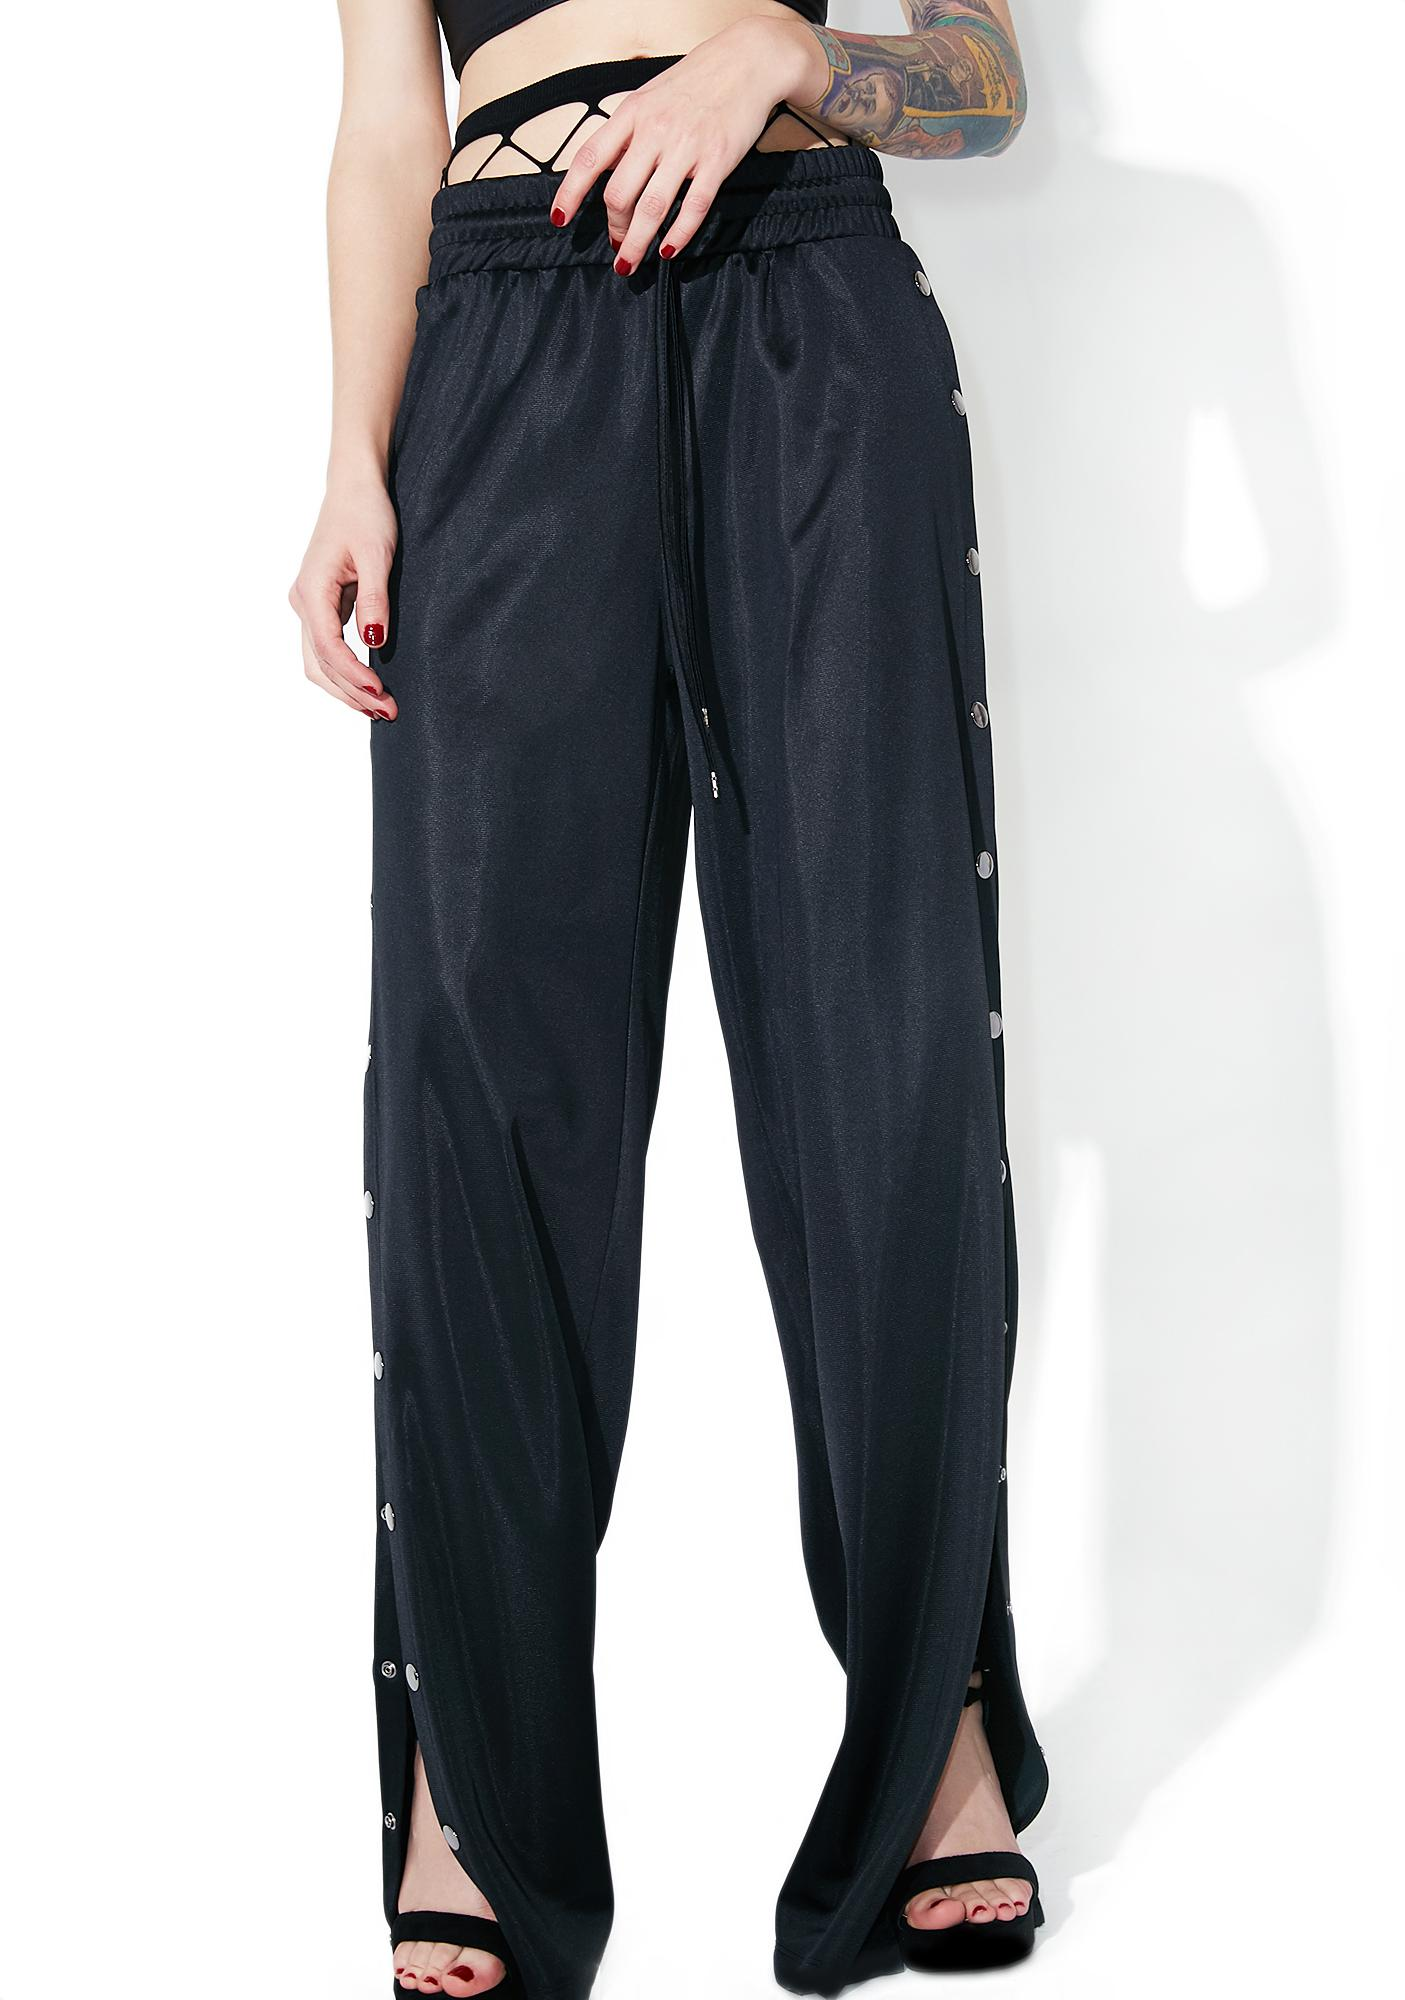 Scary Wannabe Snap Track Pants